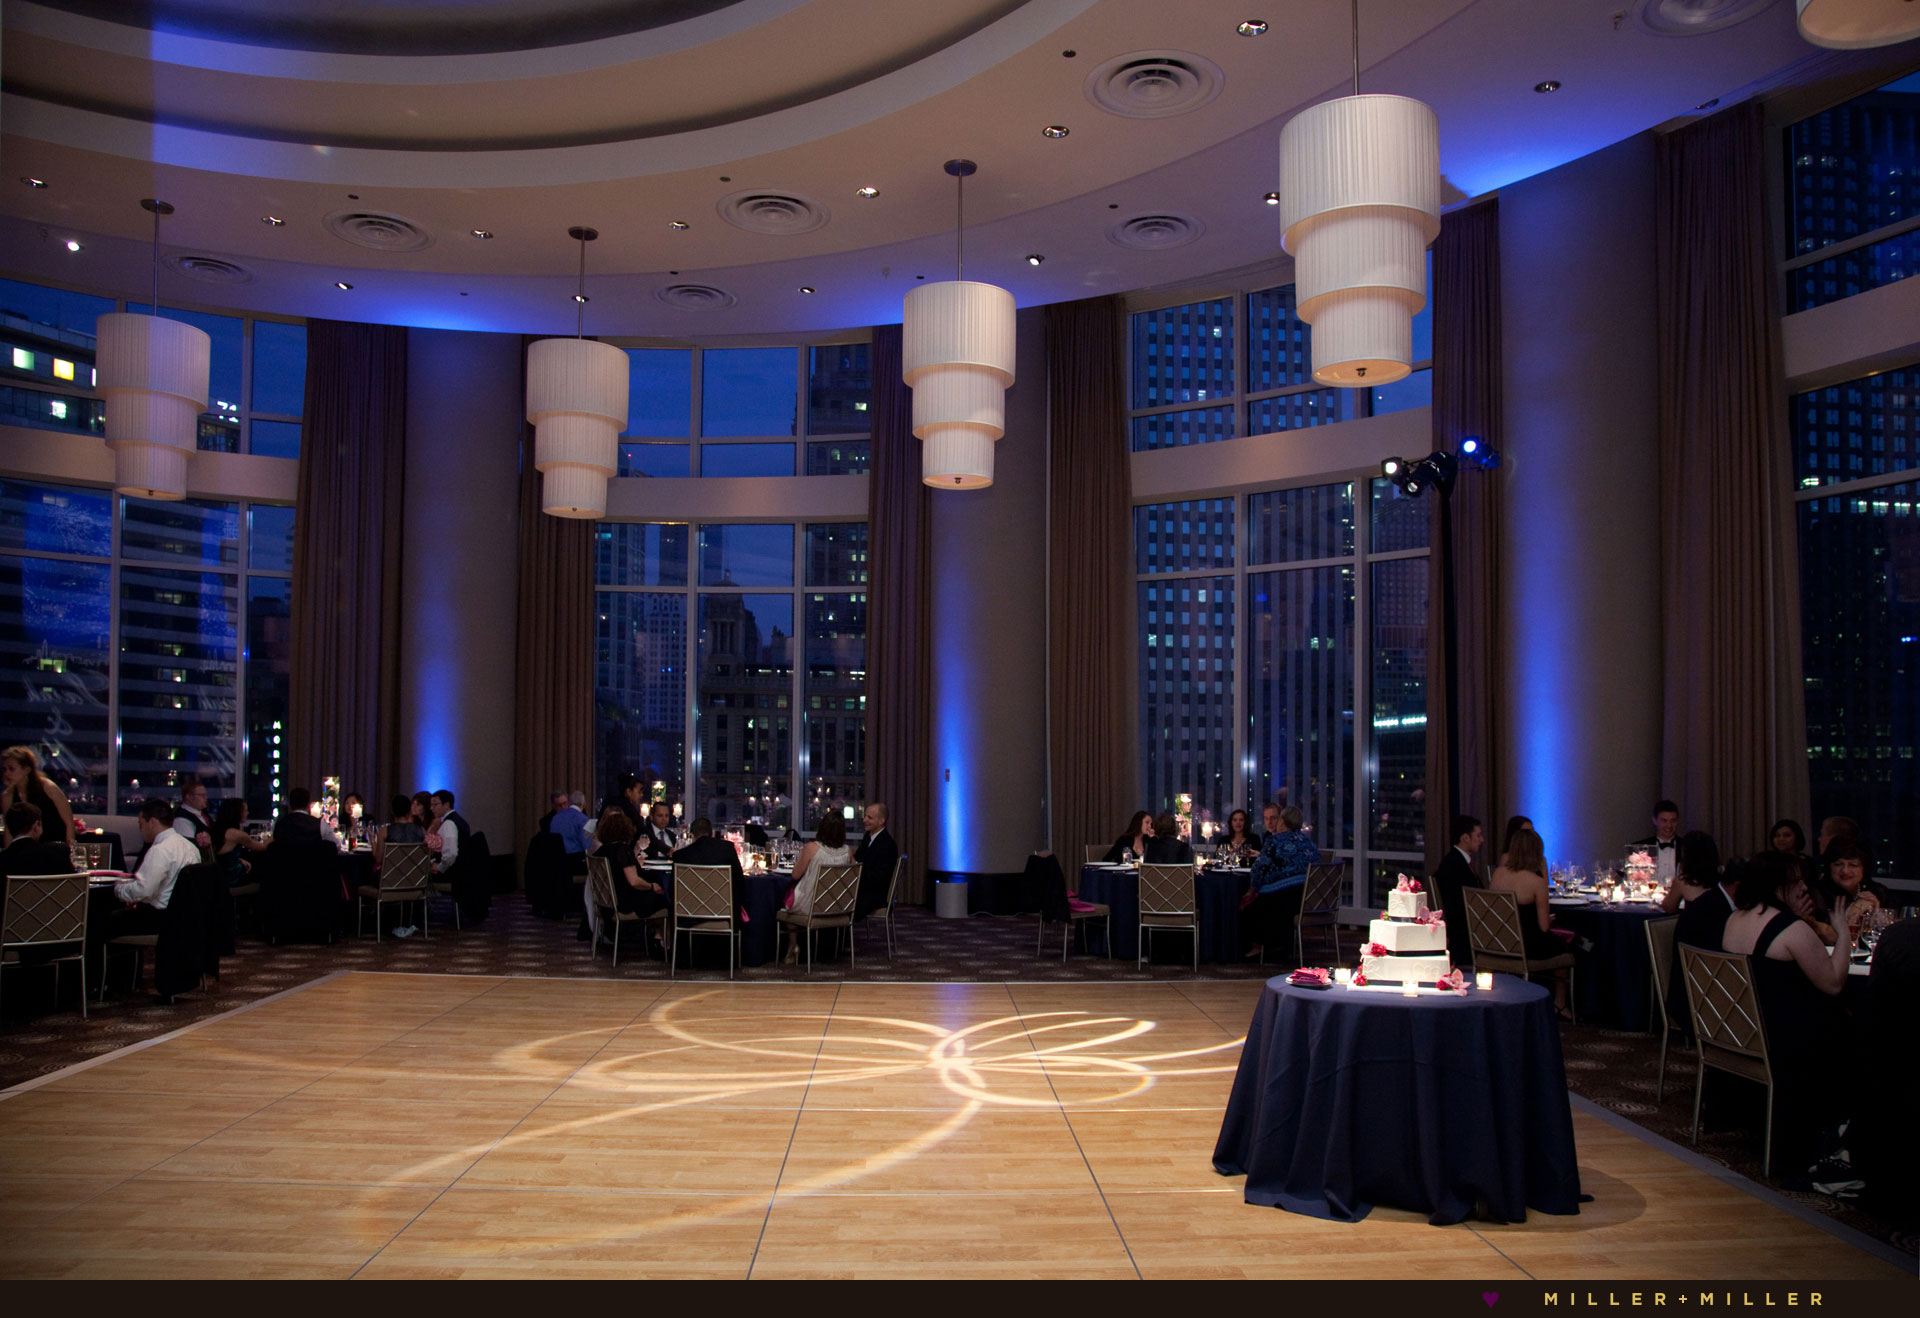 Trump ballroom blue Chicago night skyline